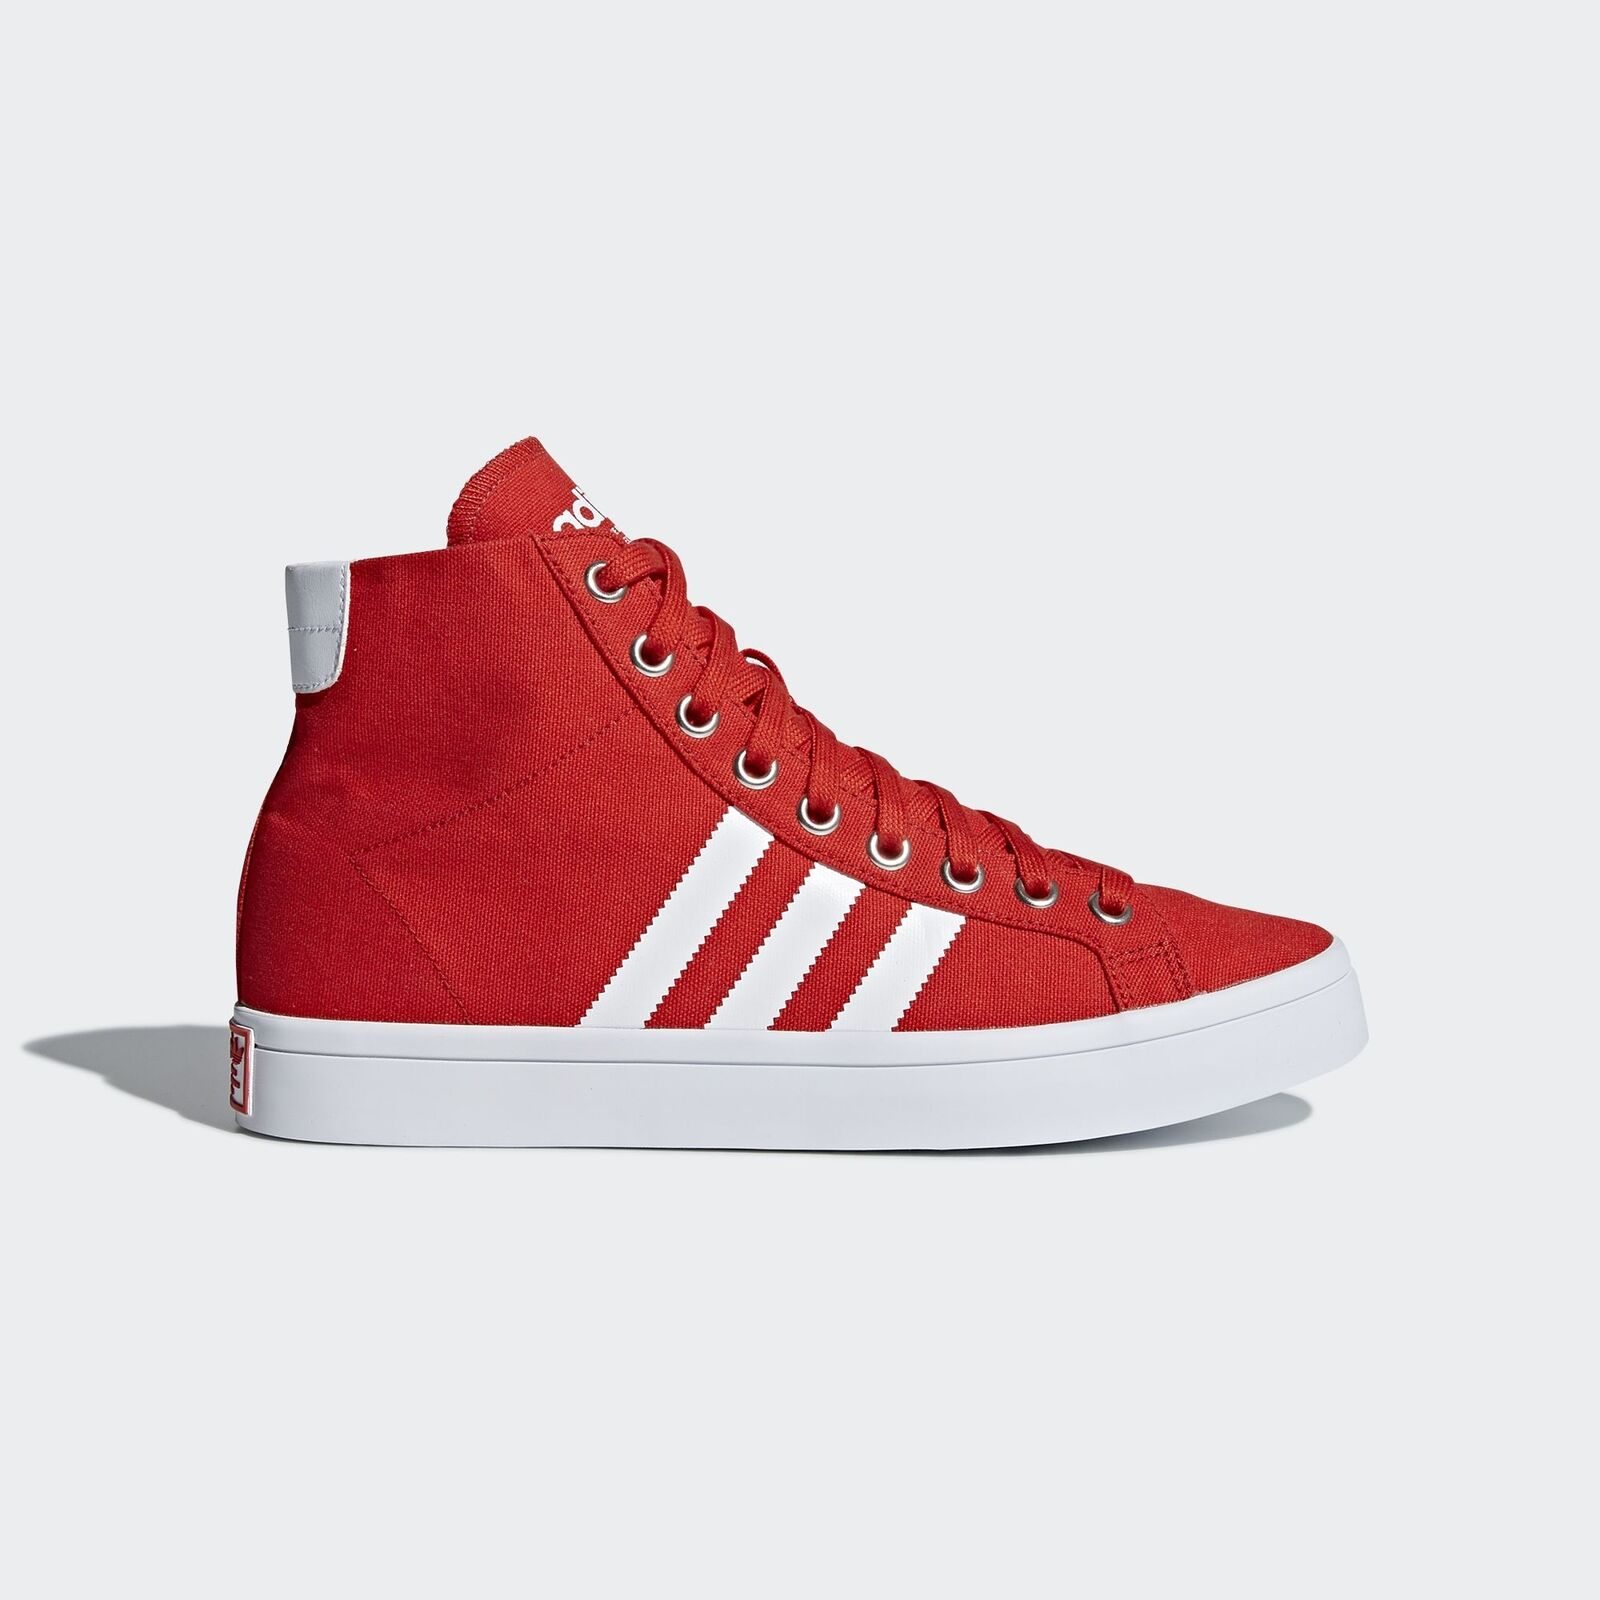 MENS Adidas Originals Shoes Court Vantage MID  size 11 Brand New best-selling model of the brand